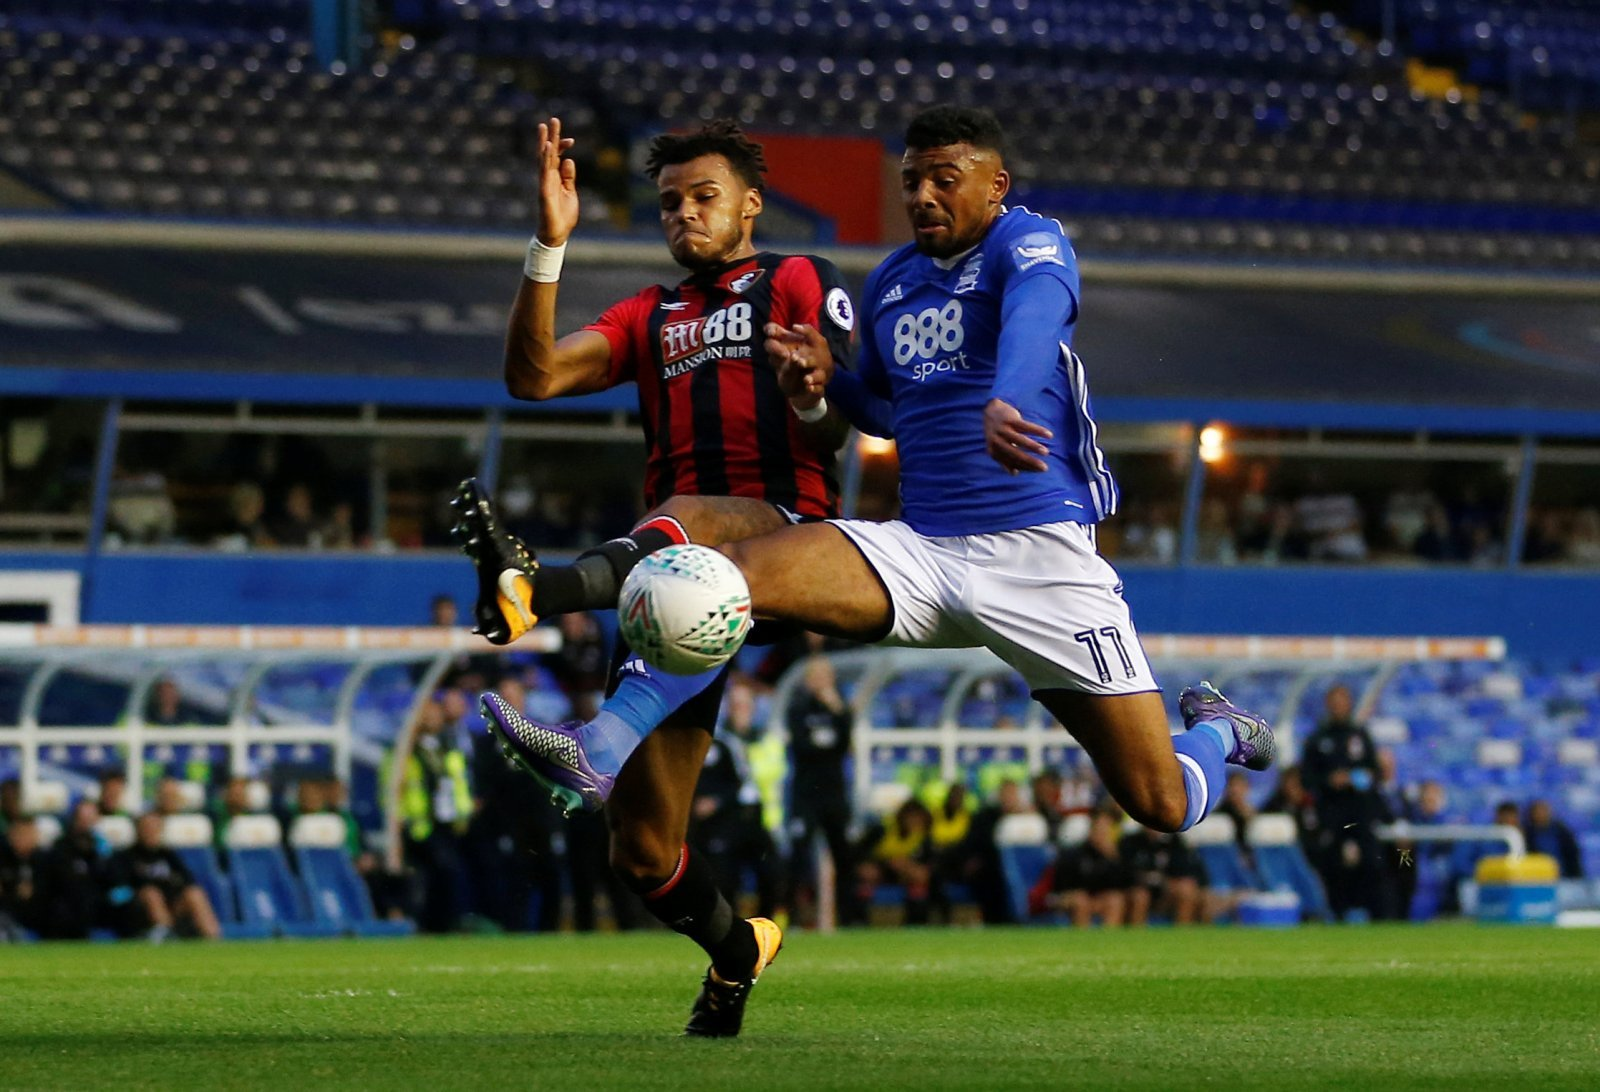 Isaac Vassell could get his chance to shine with Portsmouth